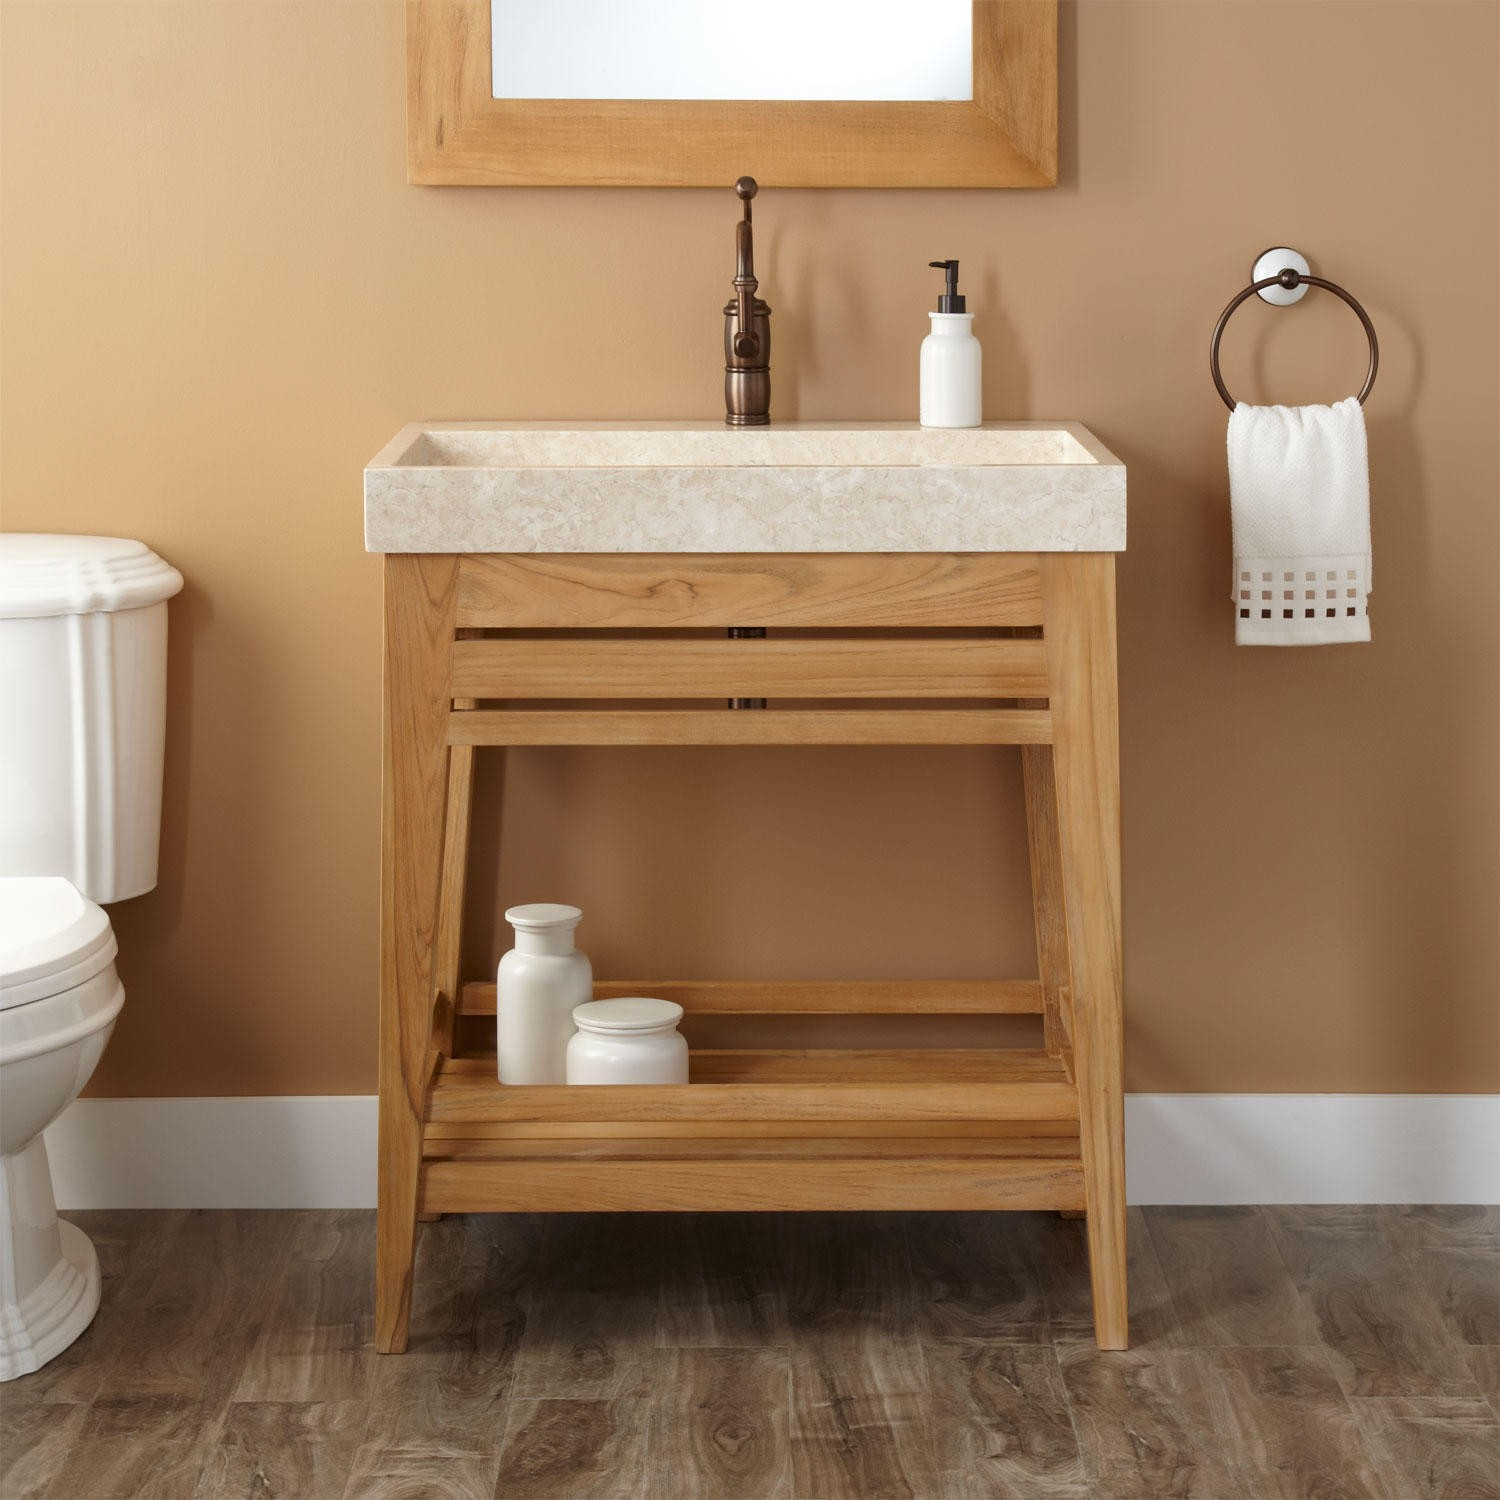 "Modern 30"" Aurelia Teak Trough Sink Console Vanity - Natural Teak - Bathroom within Bathroom Sink And Vanity"